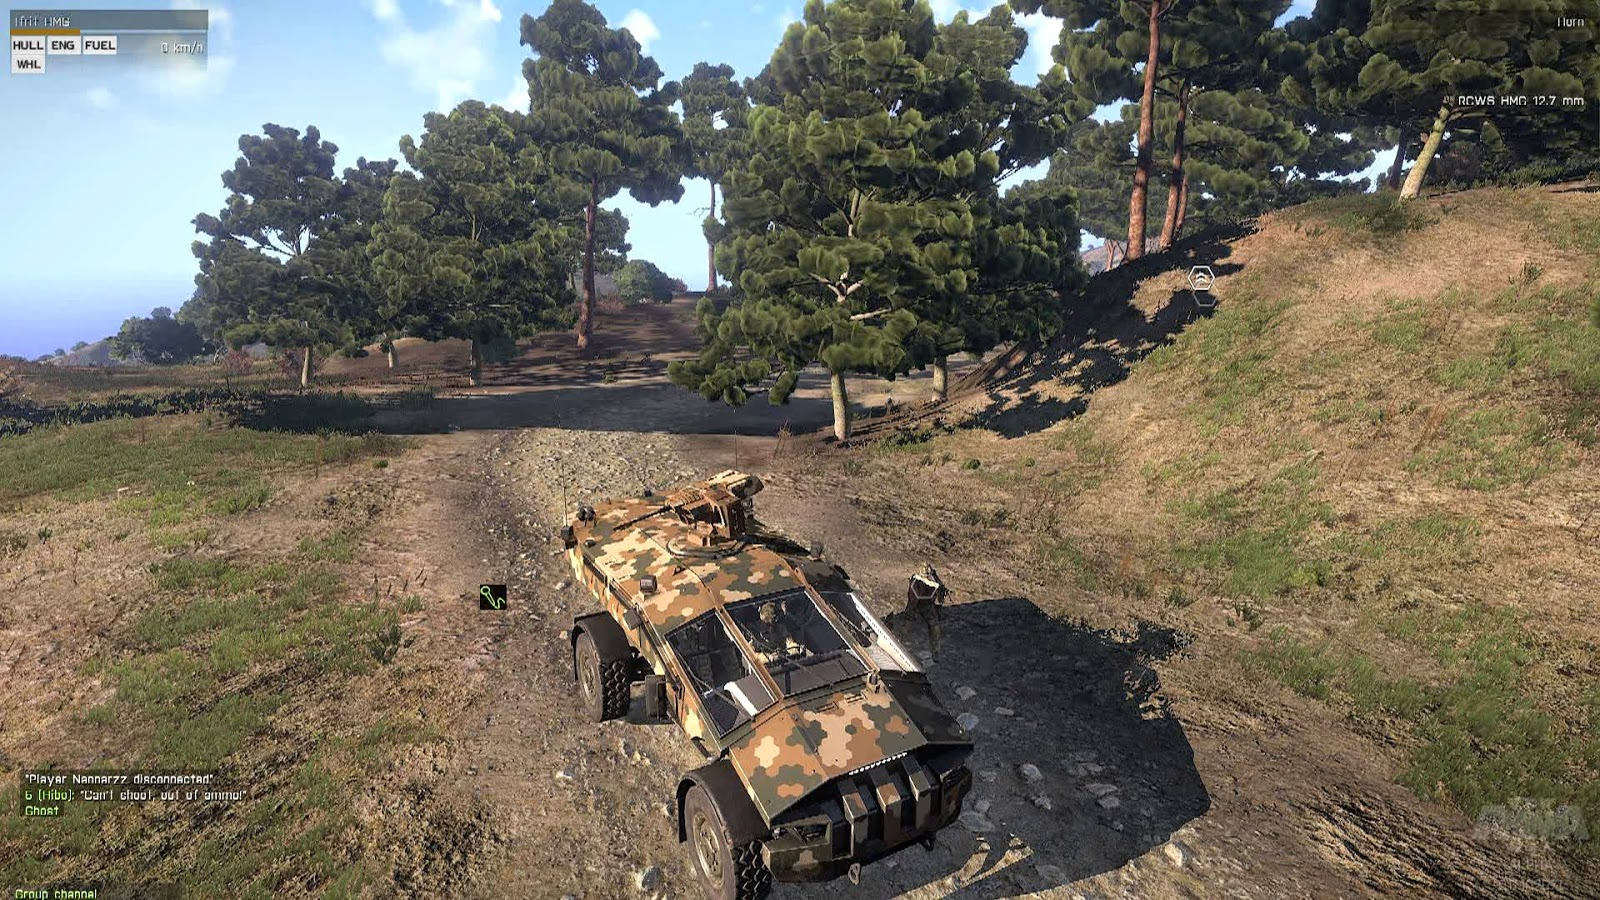 Arma 3 Free Download Full Version PC Game | Hell of Games